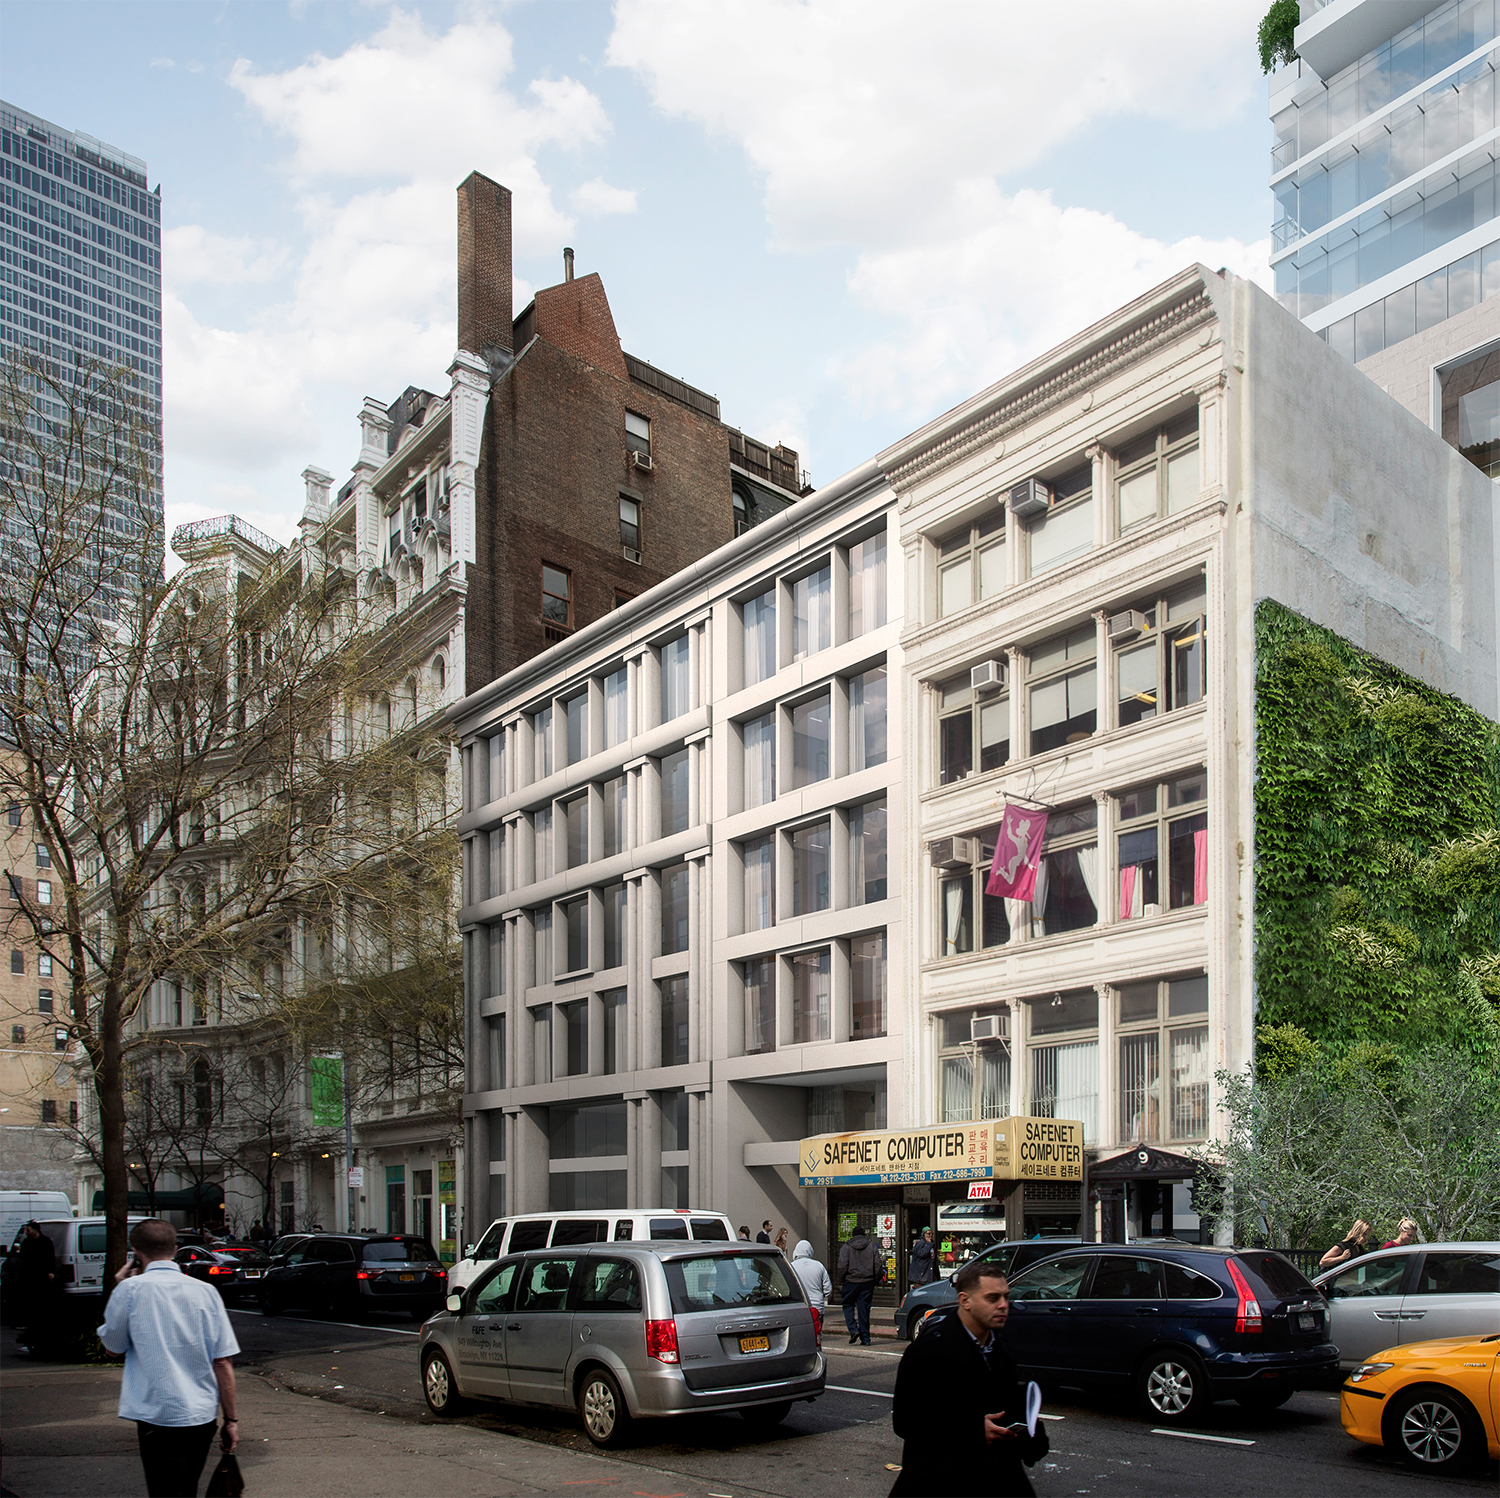 Rendering of the row house replacements. The closest building is not part of the project.